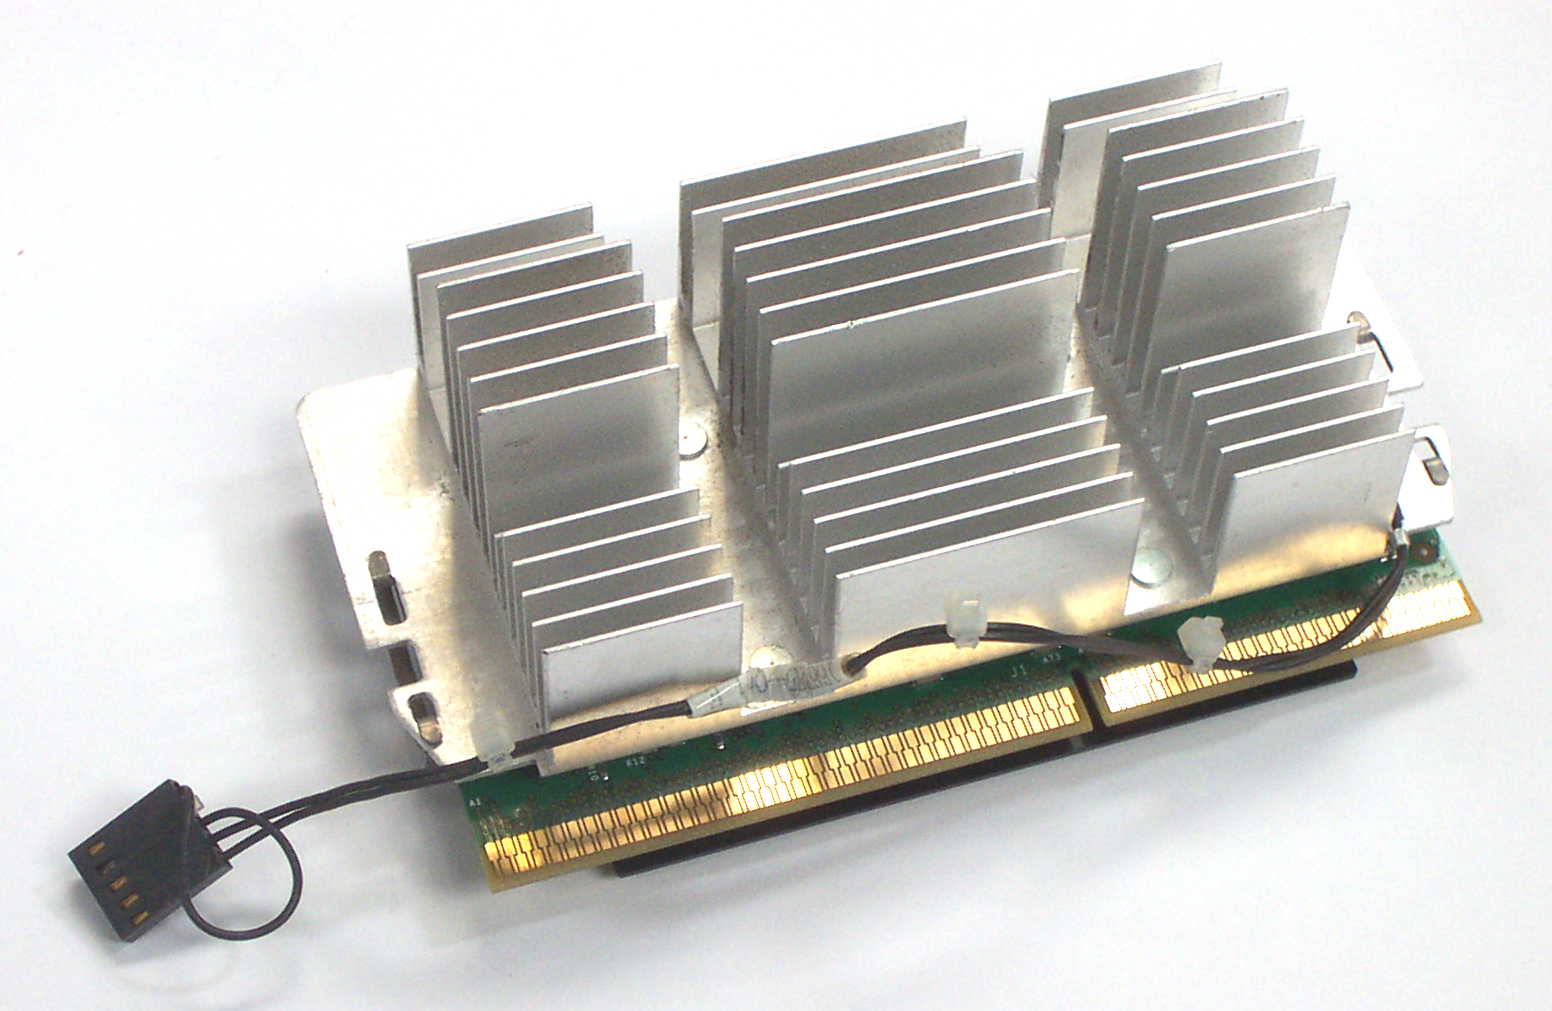 Intel SL35E Pentium 3 500MHz CPU with Compaq 388286-002 Heatsink